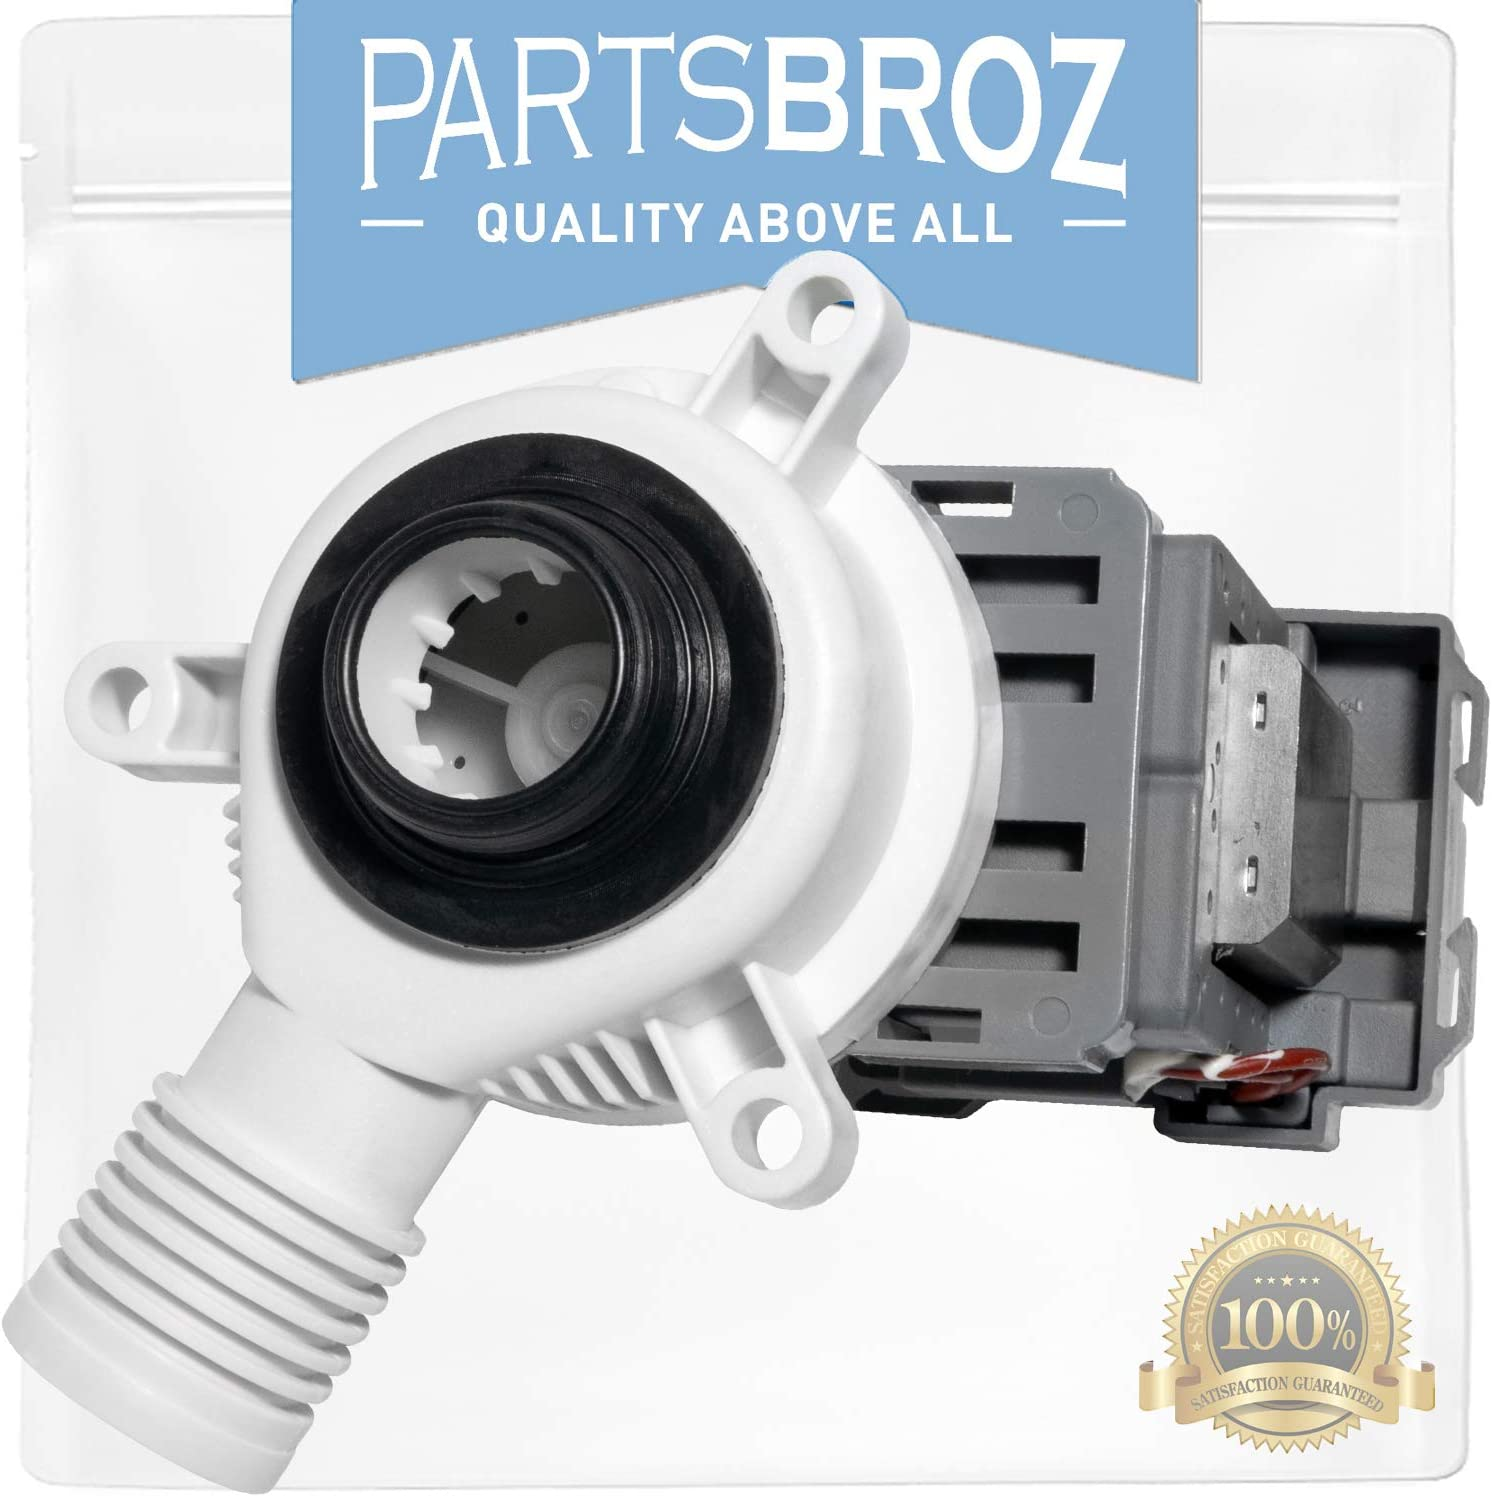 W10276397 Drain Pump by PartsBroz - Compatible with Whirlpool Washing Machines - Replaces WPW10276397, AP6018417, PS11751719, WPW10276397VP